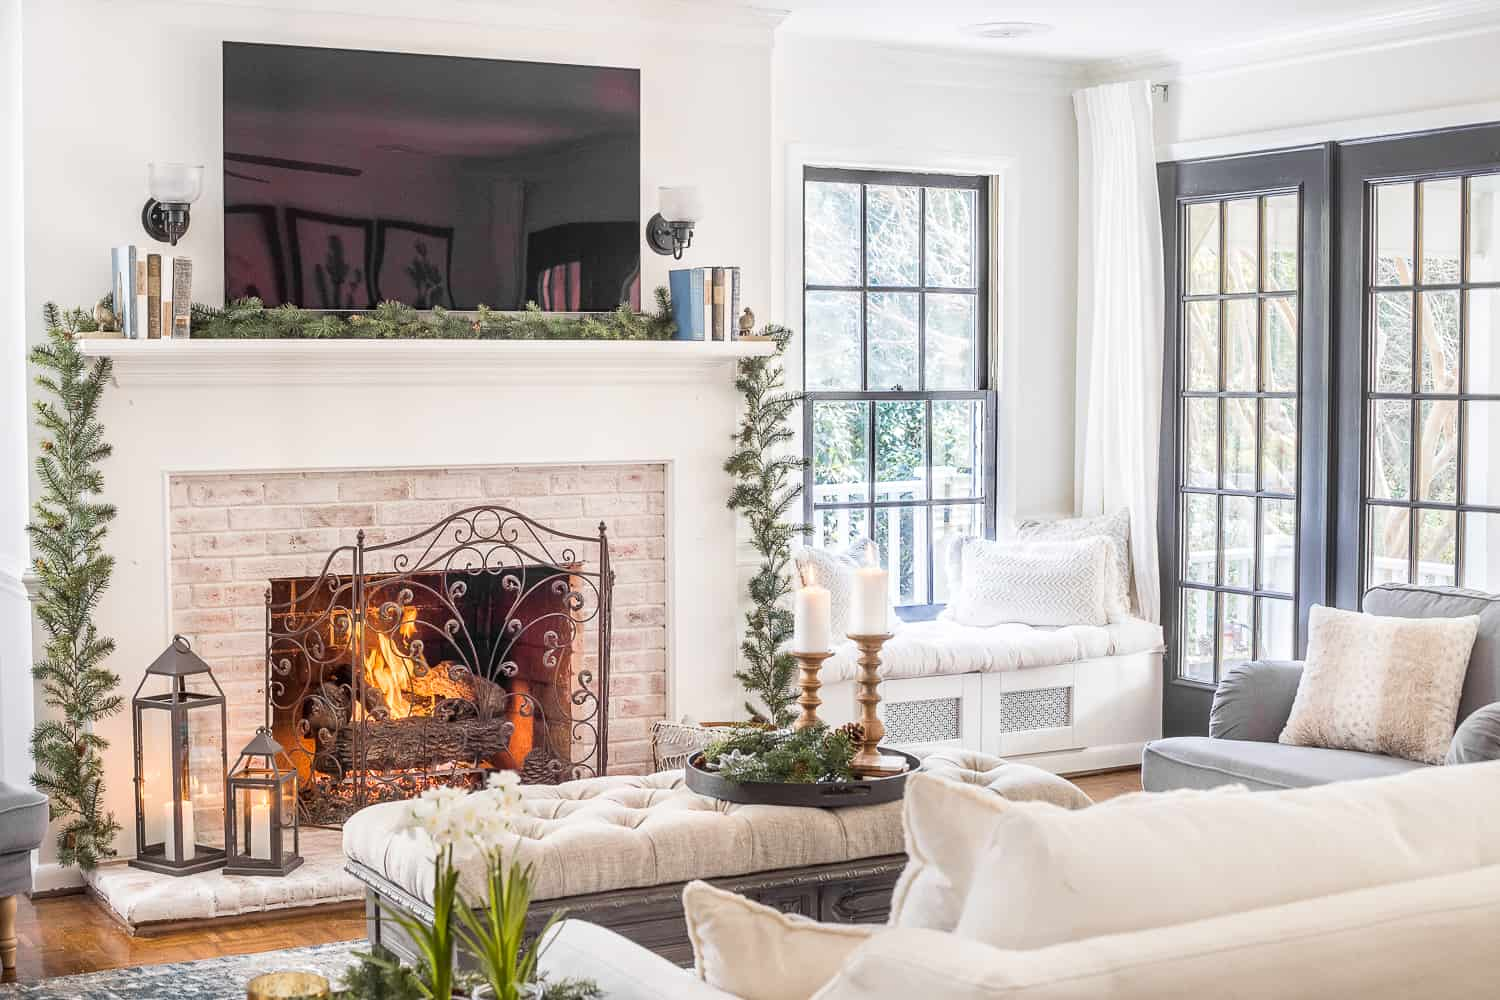 10 Ways To Add Cozy Vintage Style To Your Home This Winter